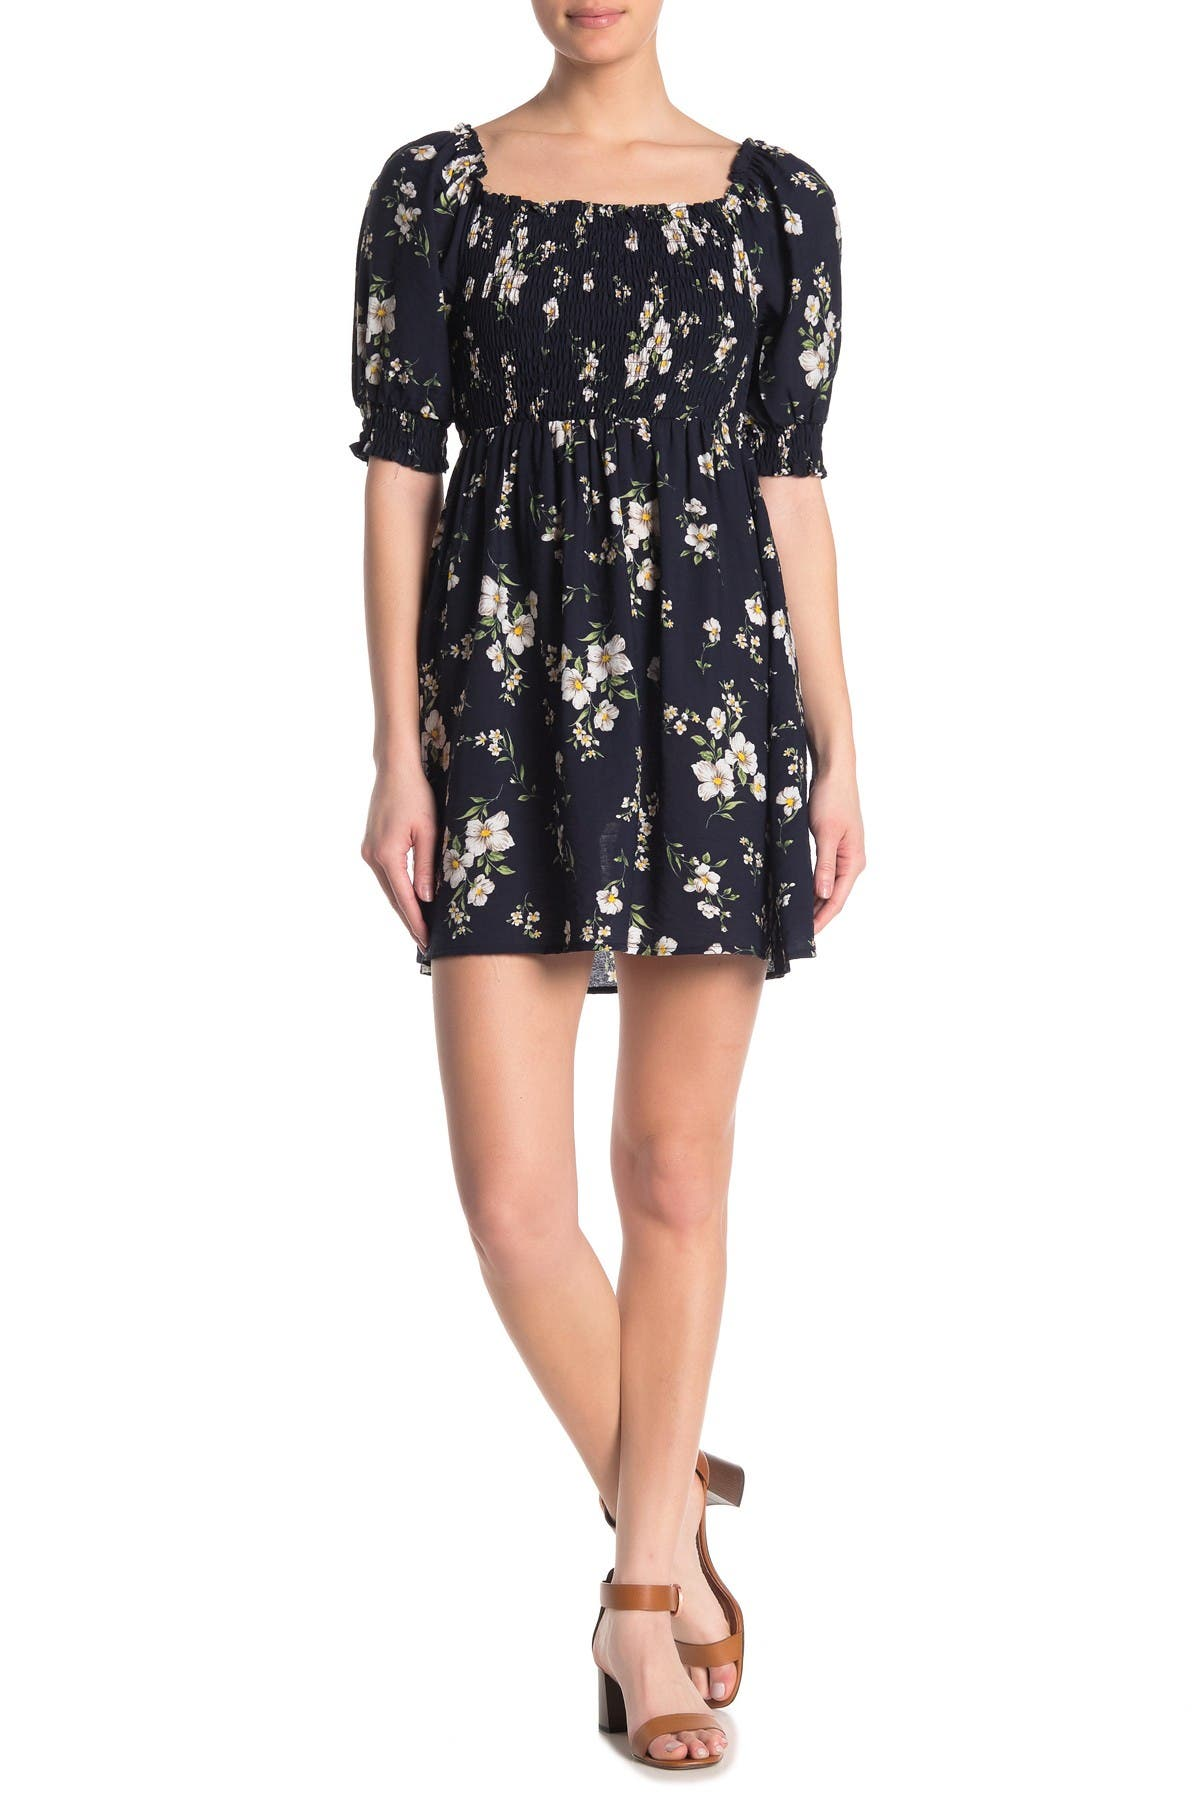 Image of SWEET RAIN Elbow Sleeve Floral Dress